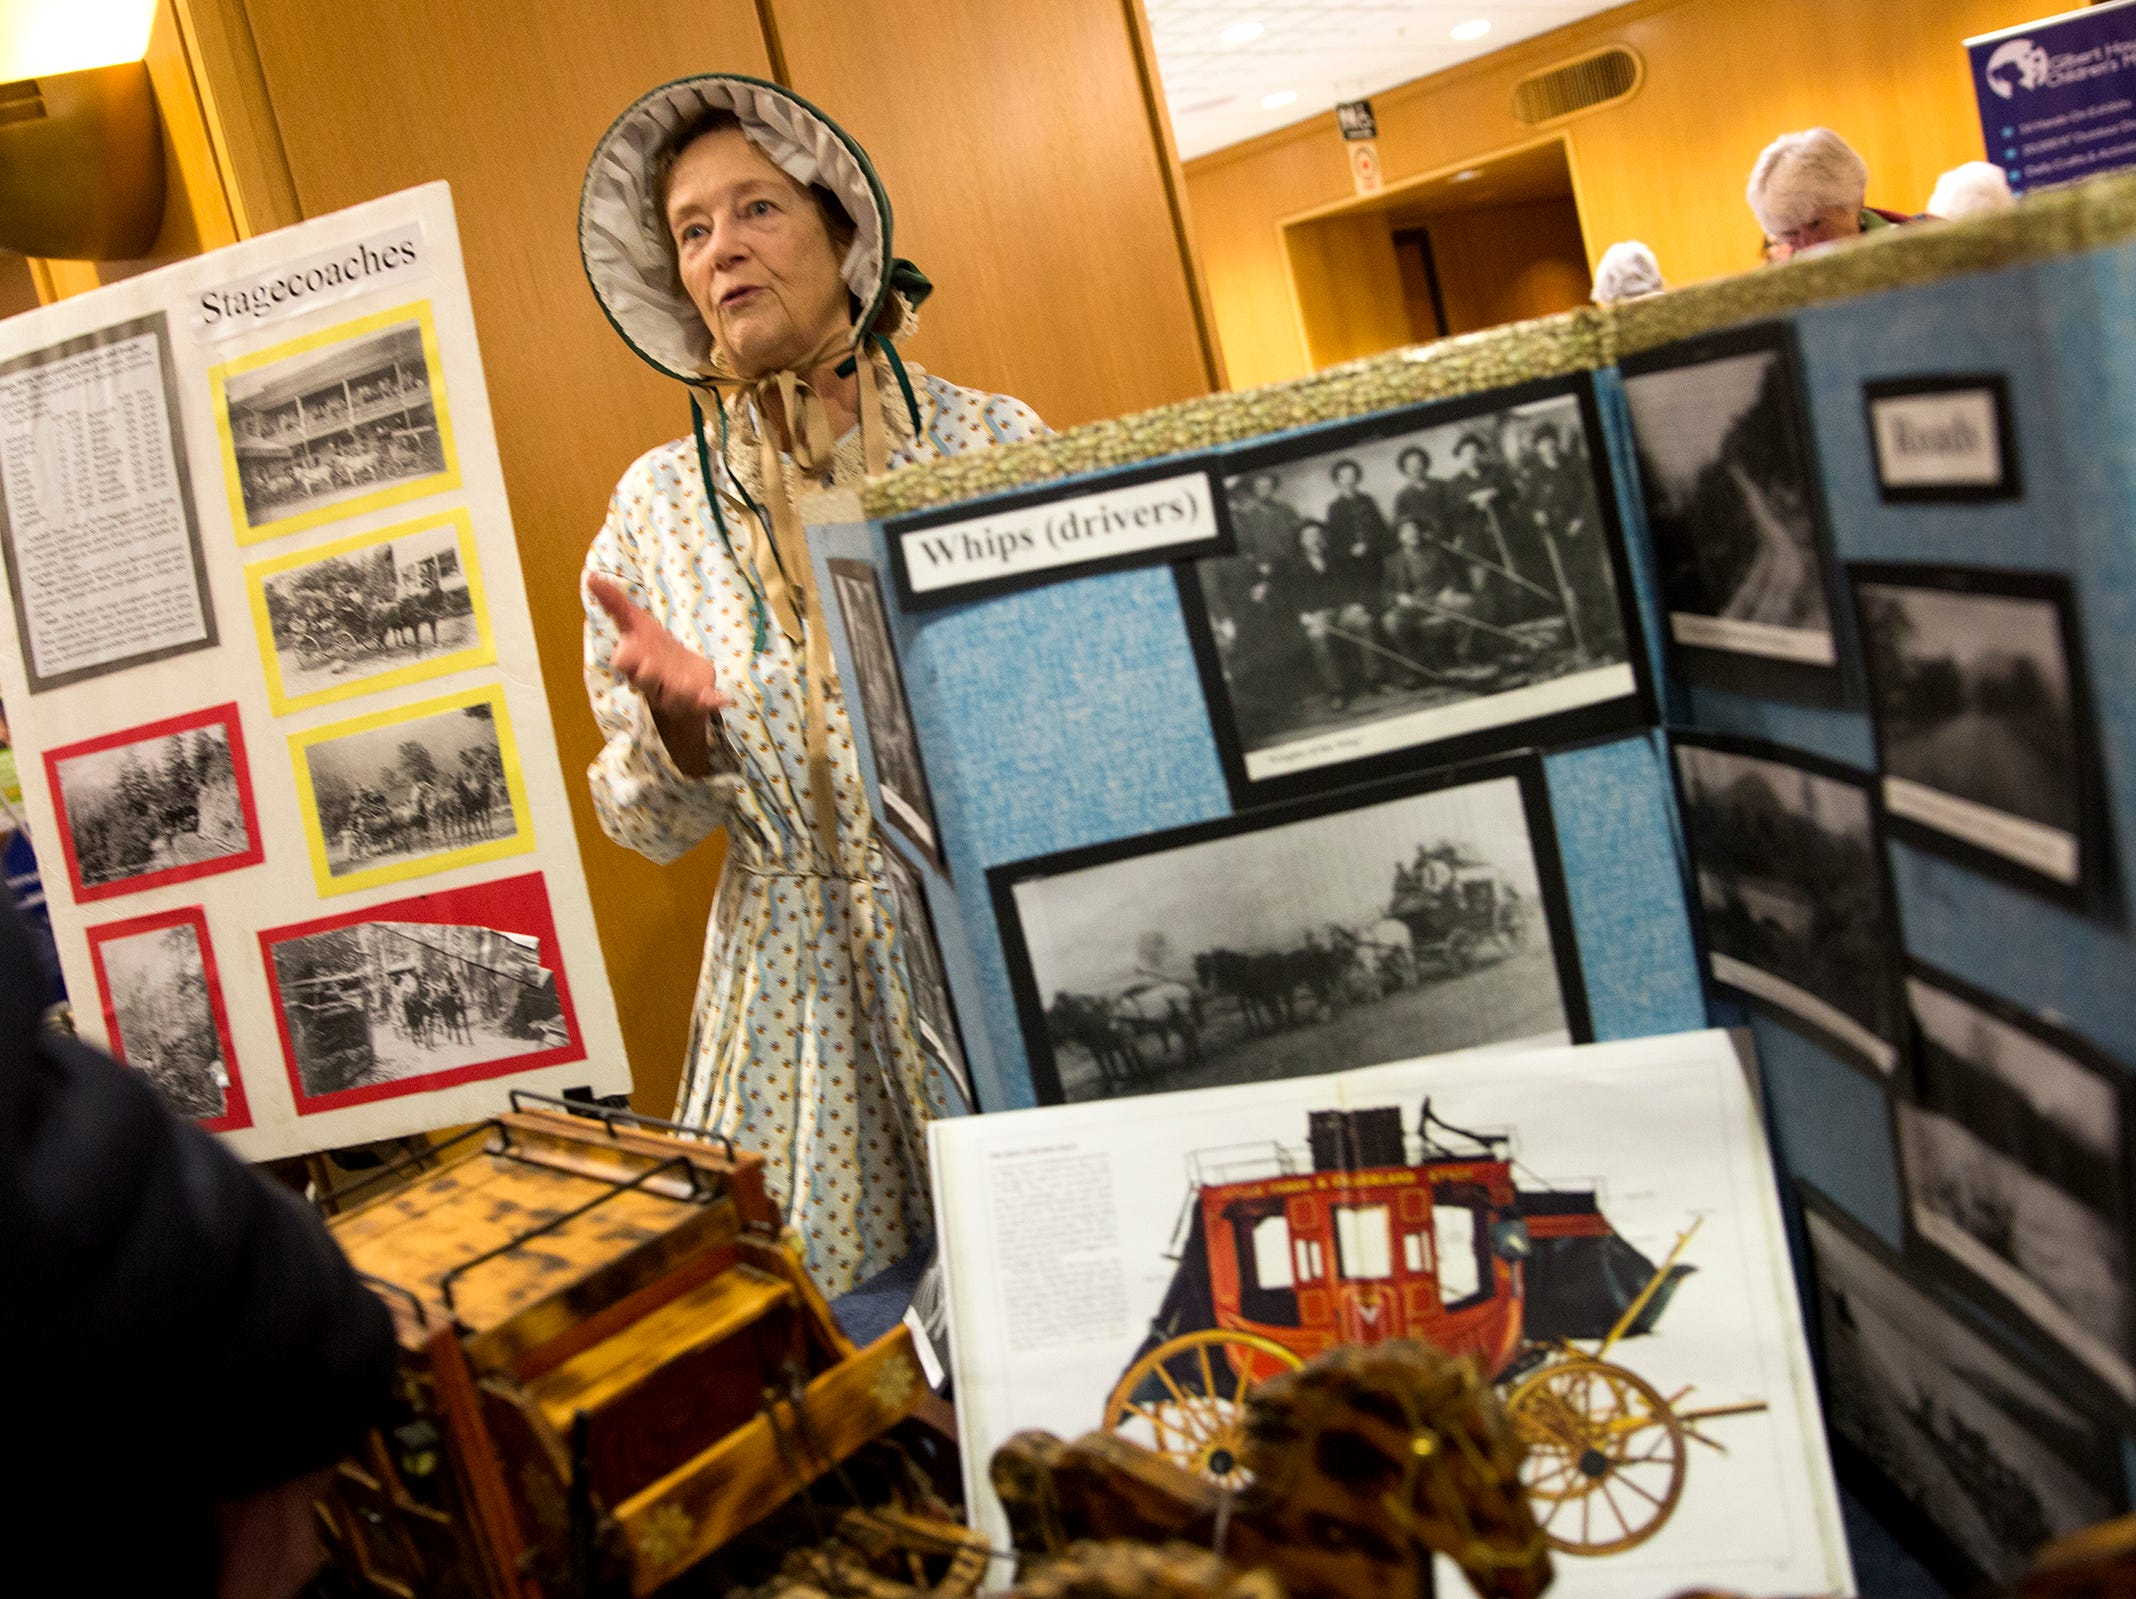 Nancye Ballard talks about the history of stagecoaches during Oregon's 160th Birthday Celebration at the Oregon State Capitol in Salem on Saturday, Feb. 16, 2019.